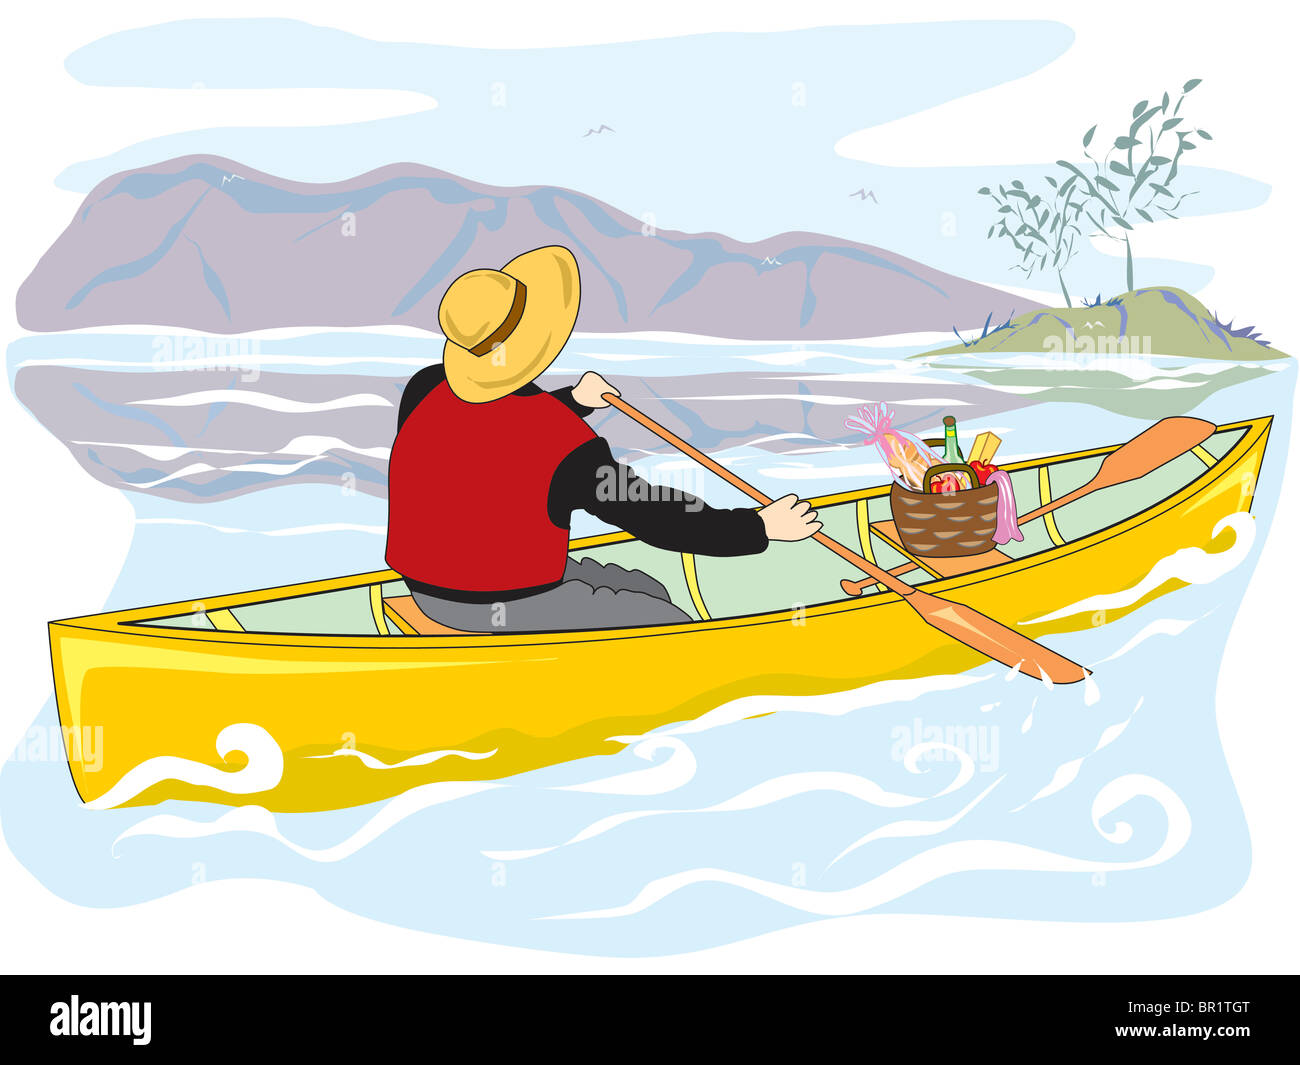 A Drawing Of Man Canoeing On River